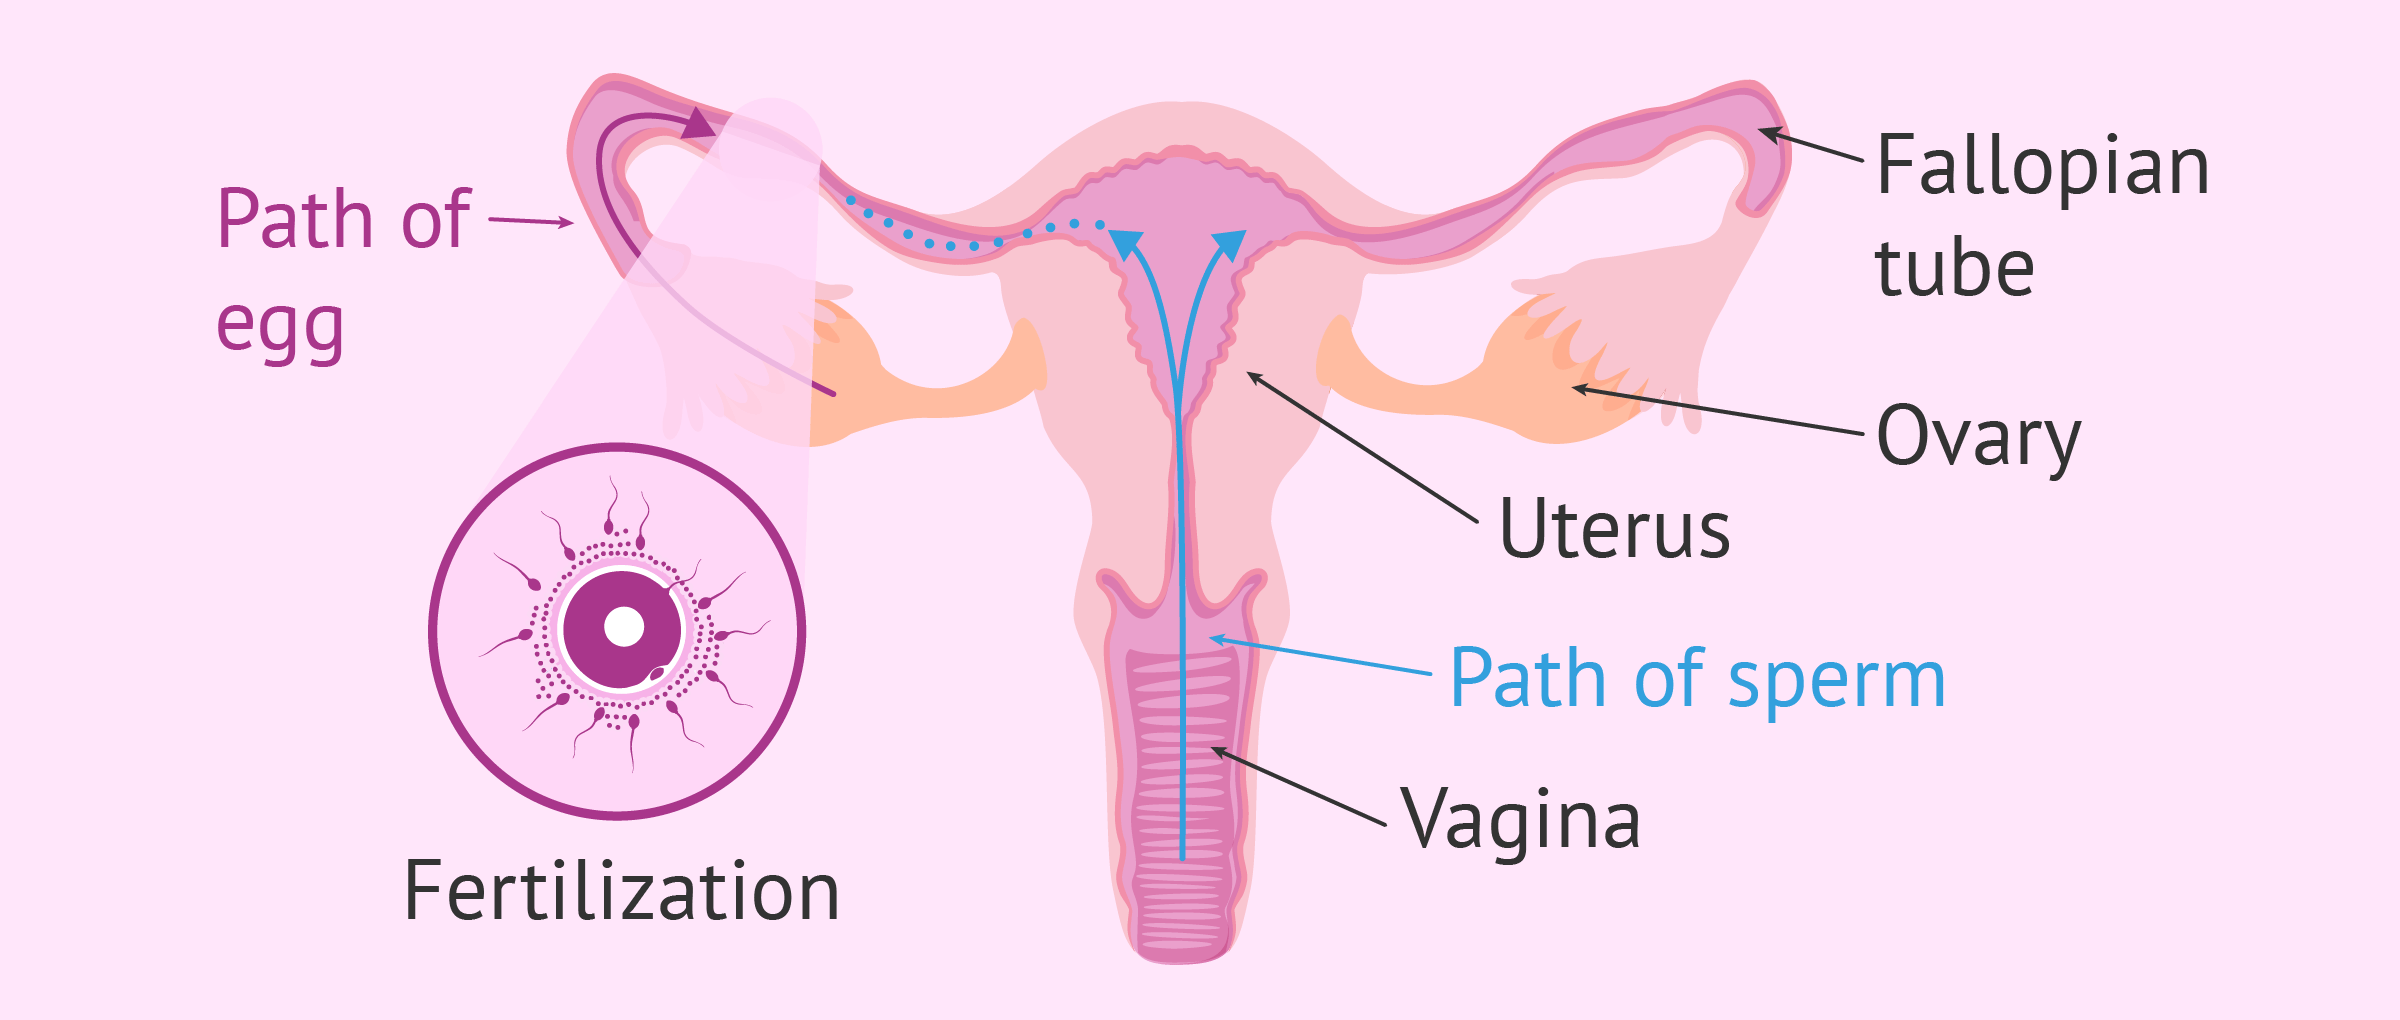 Sperm in uterus